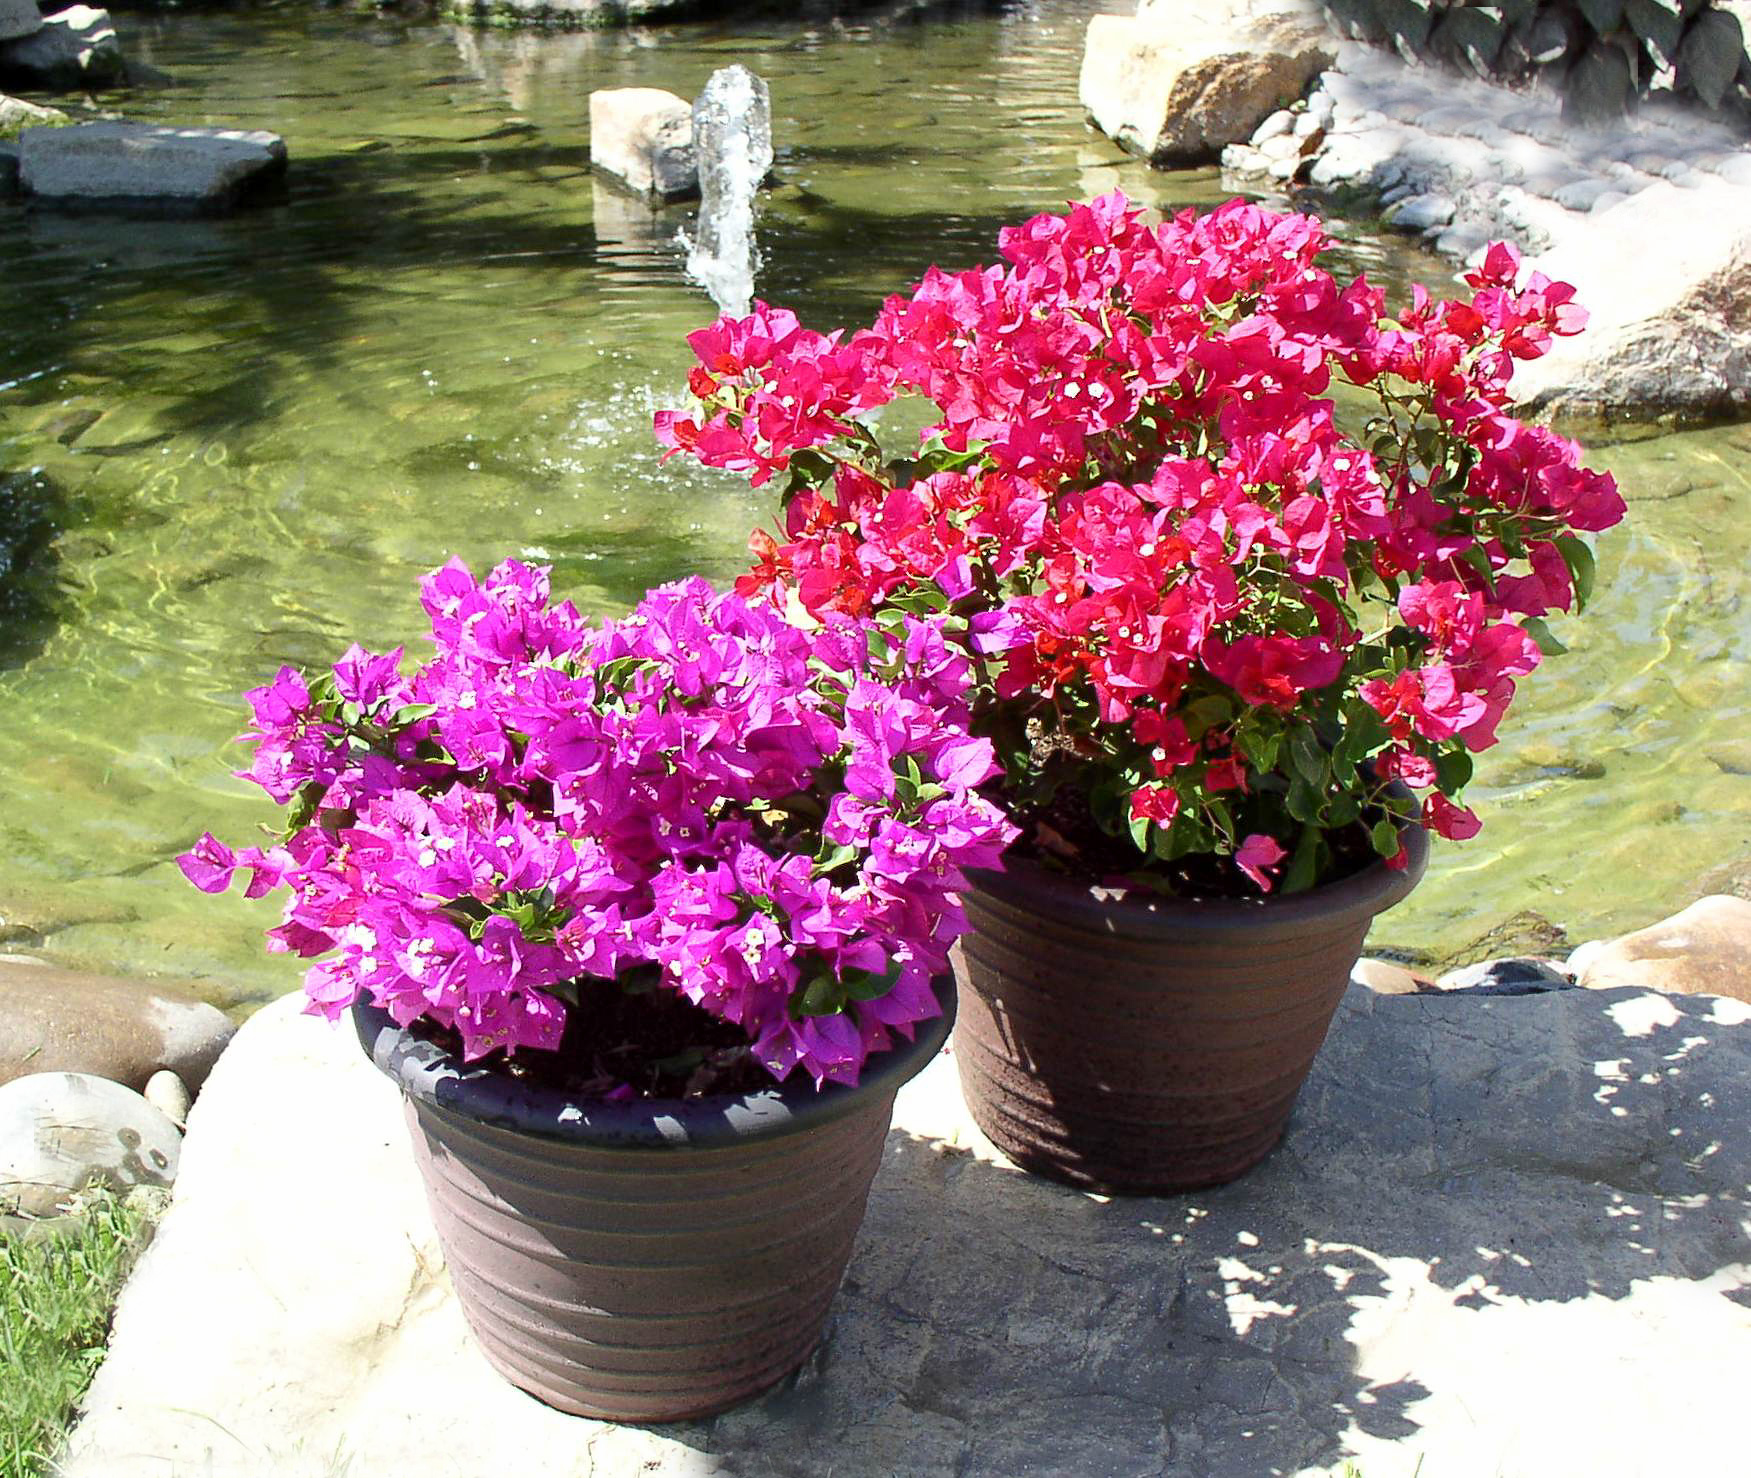 25 types of flowers to plant for summer summer flowers total scientific name bougainvillea spectabilis mightylinksfo